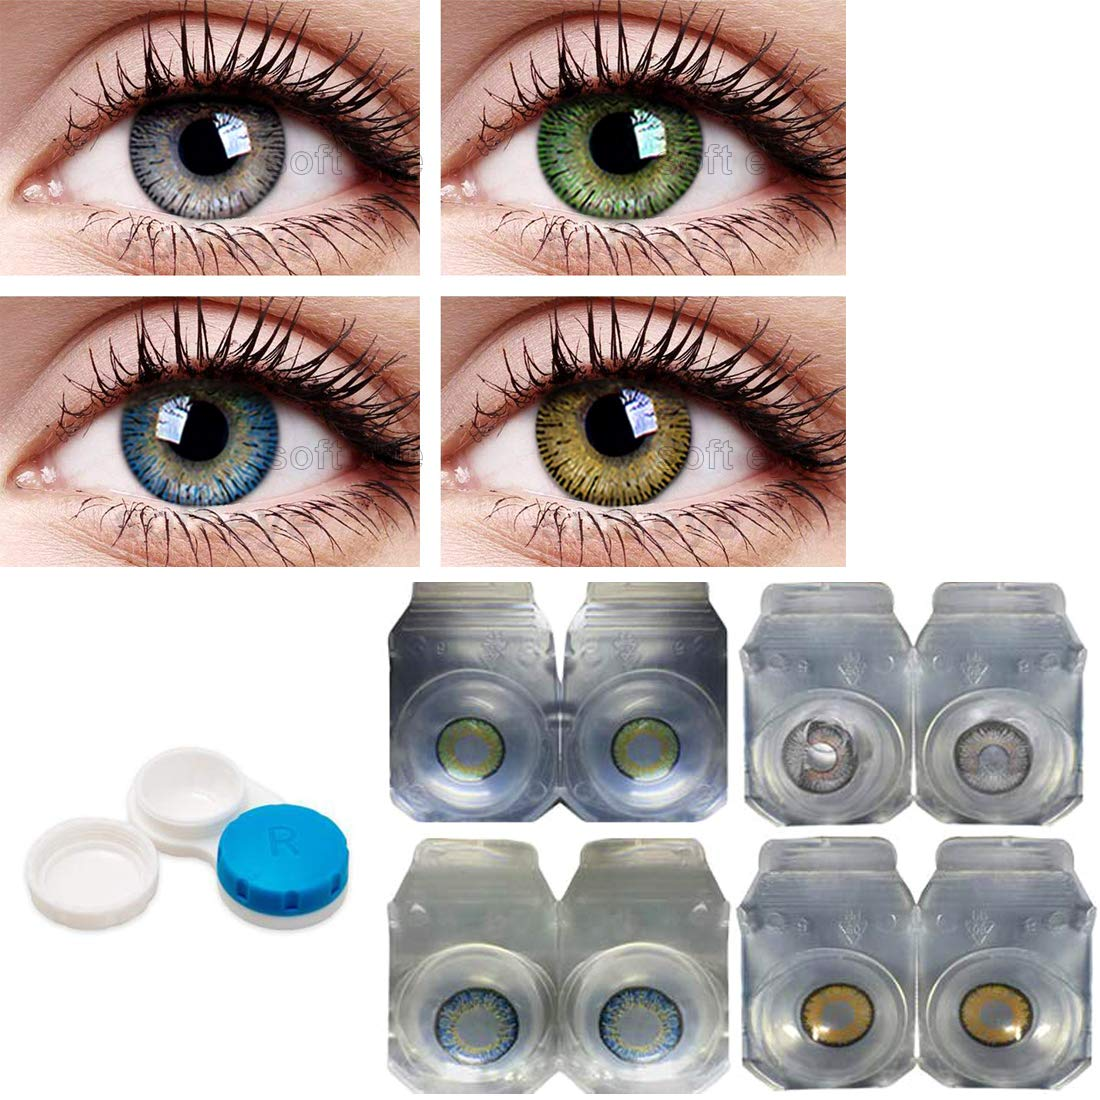 Buy Soft Eye Combo Pack Of 4 Pairs Of Monthly Color Contact Lenses Green Grey Blue Hazel Zero Power Lenses Only With Case Solution Online At Low Prices In India